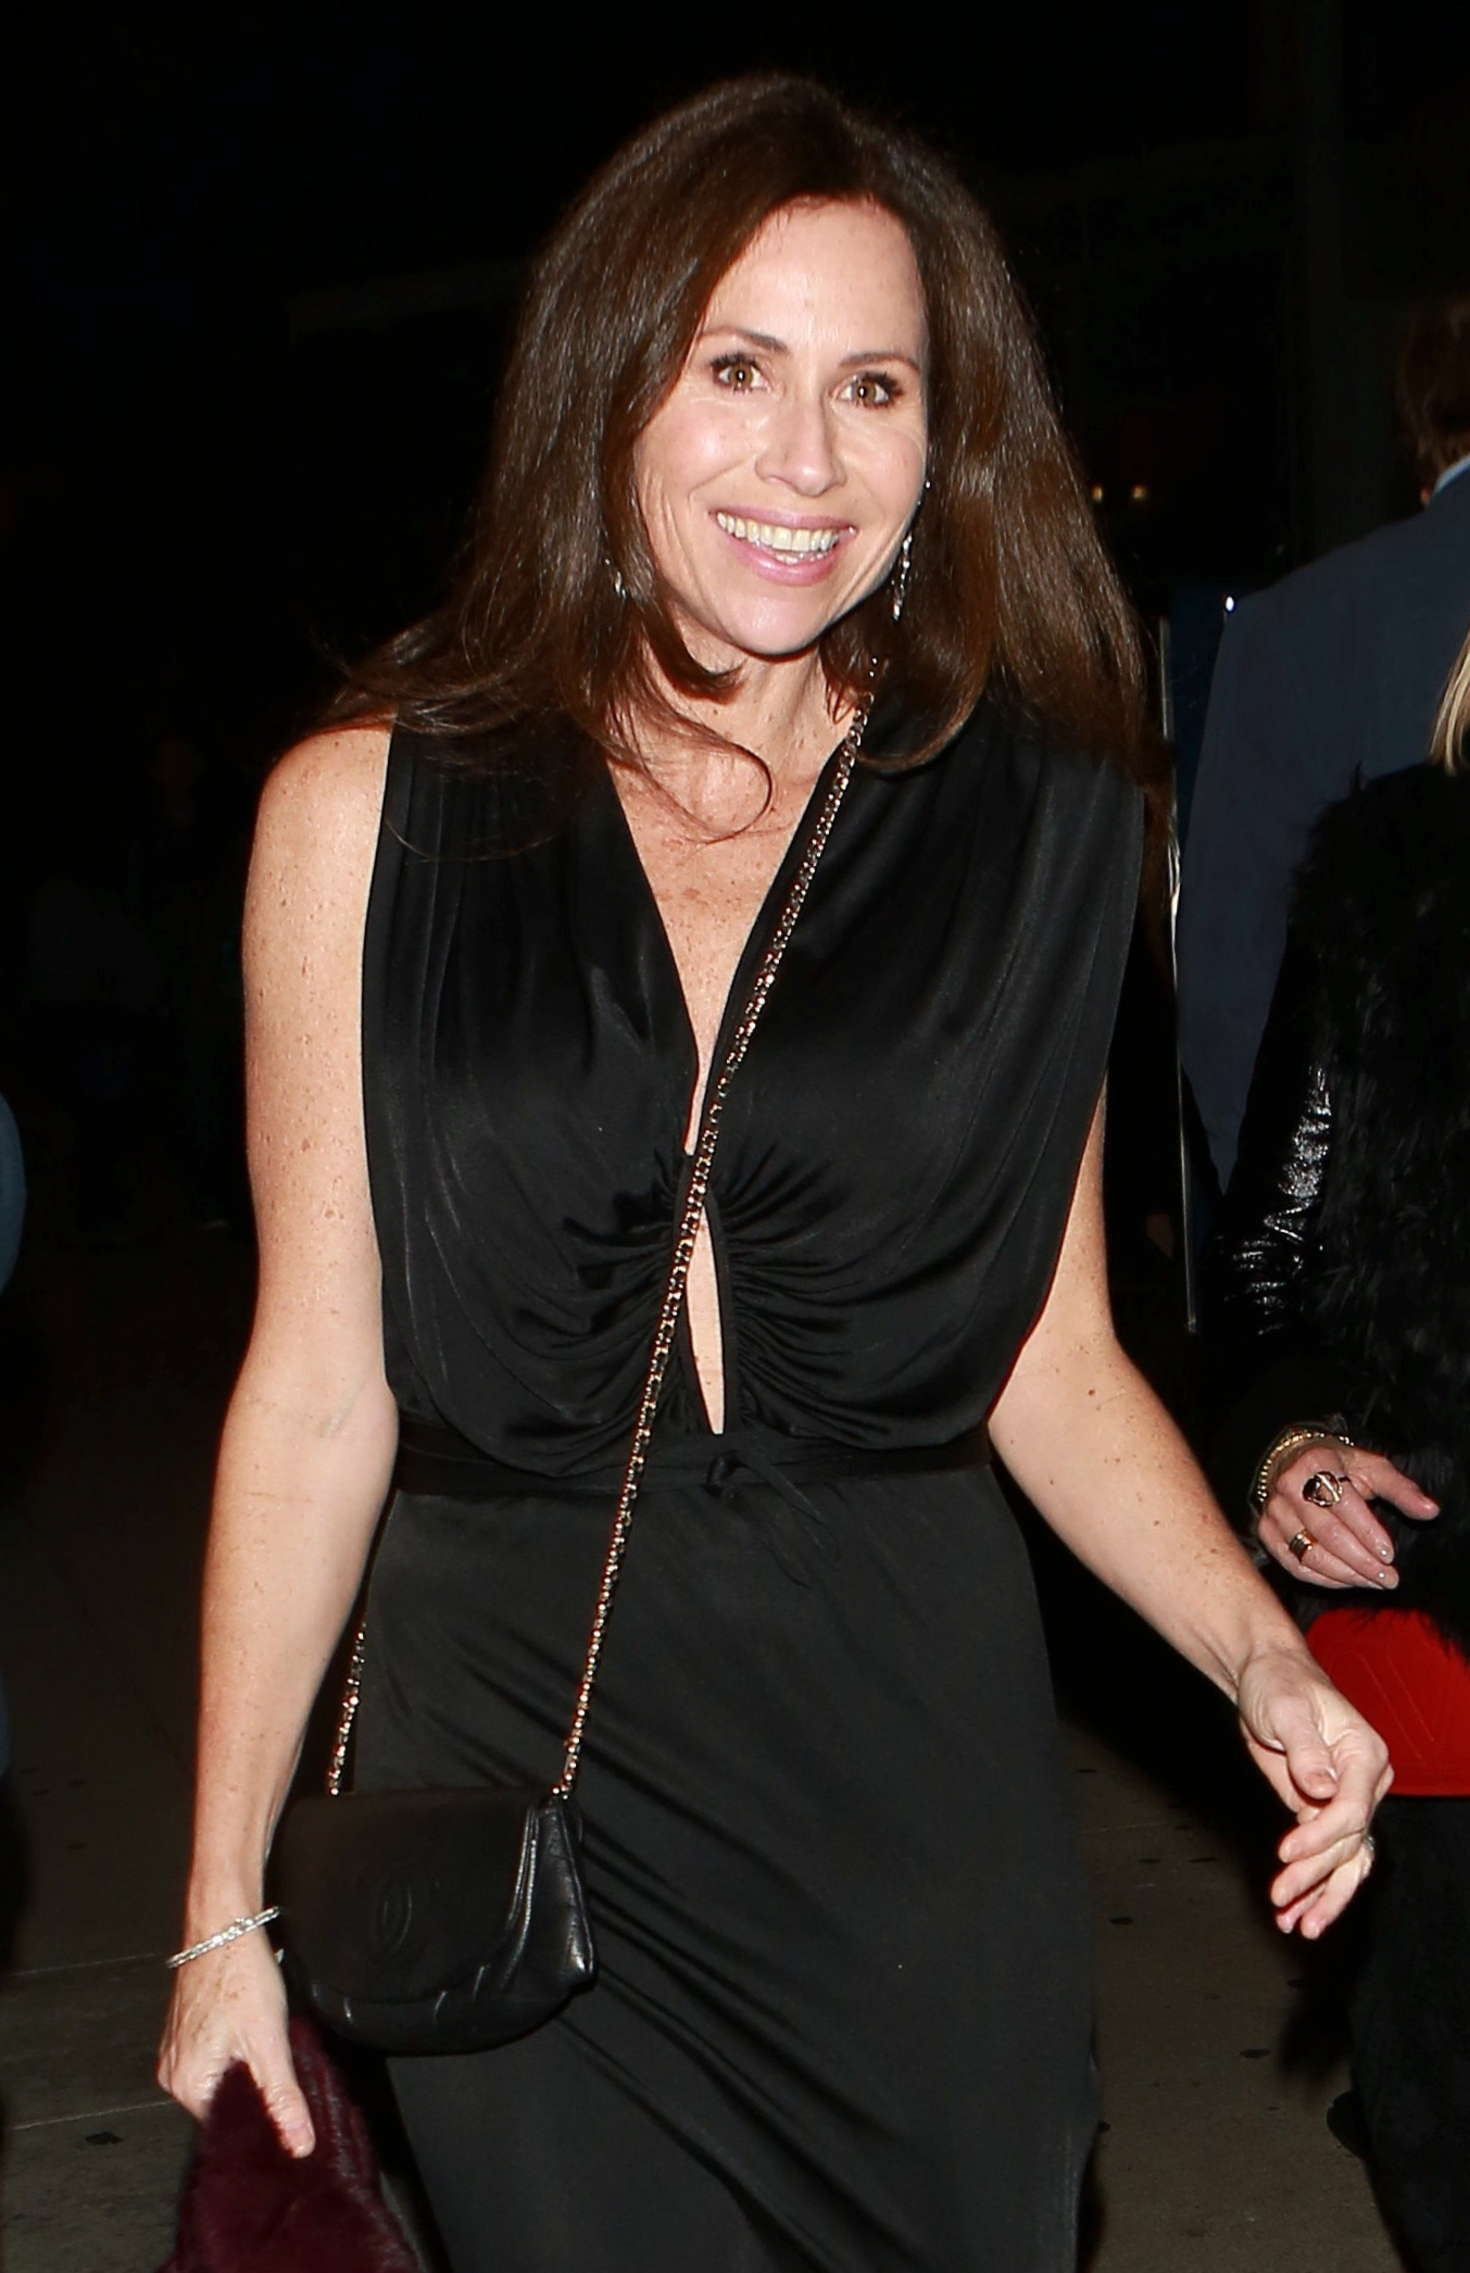 Minnie Driver at Boa Steakhouse in West Hollywood